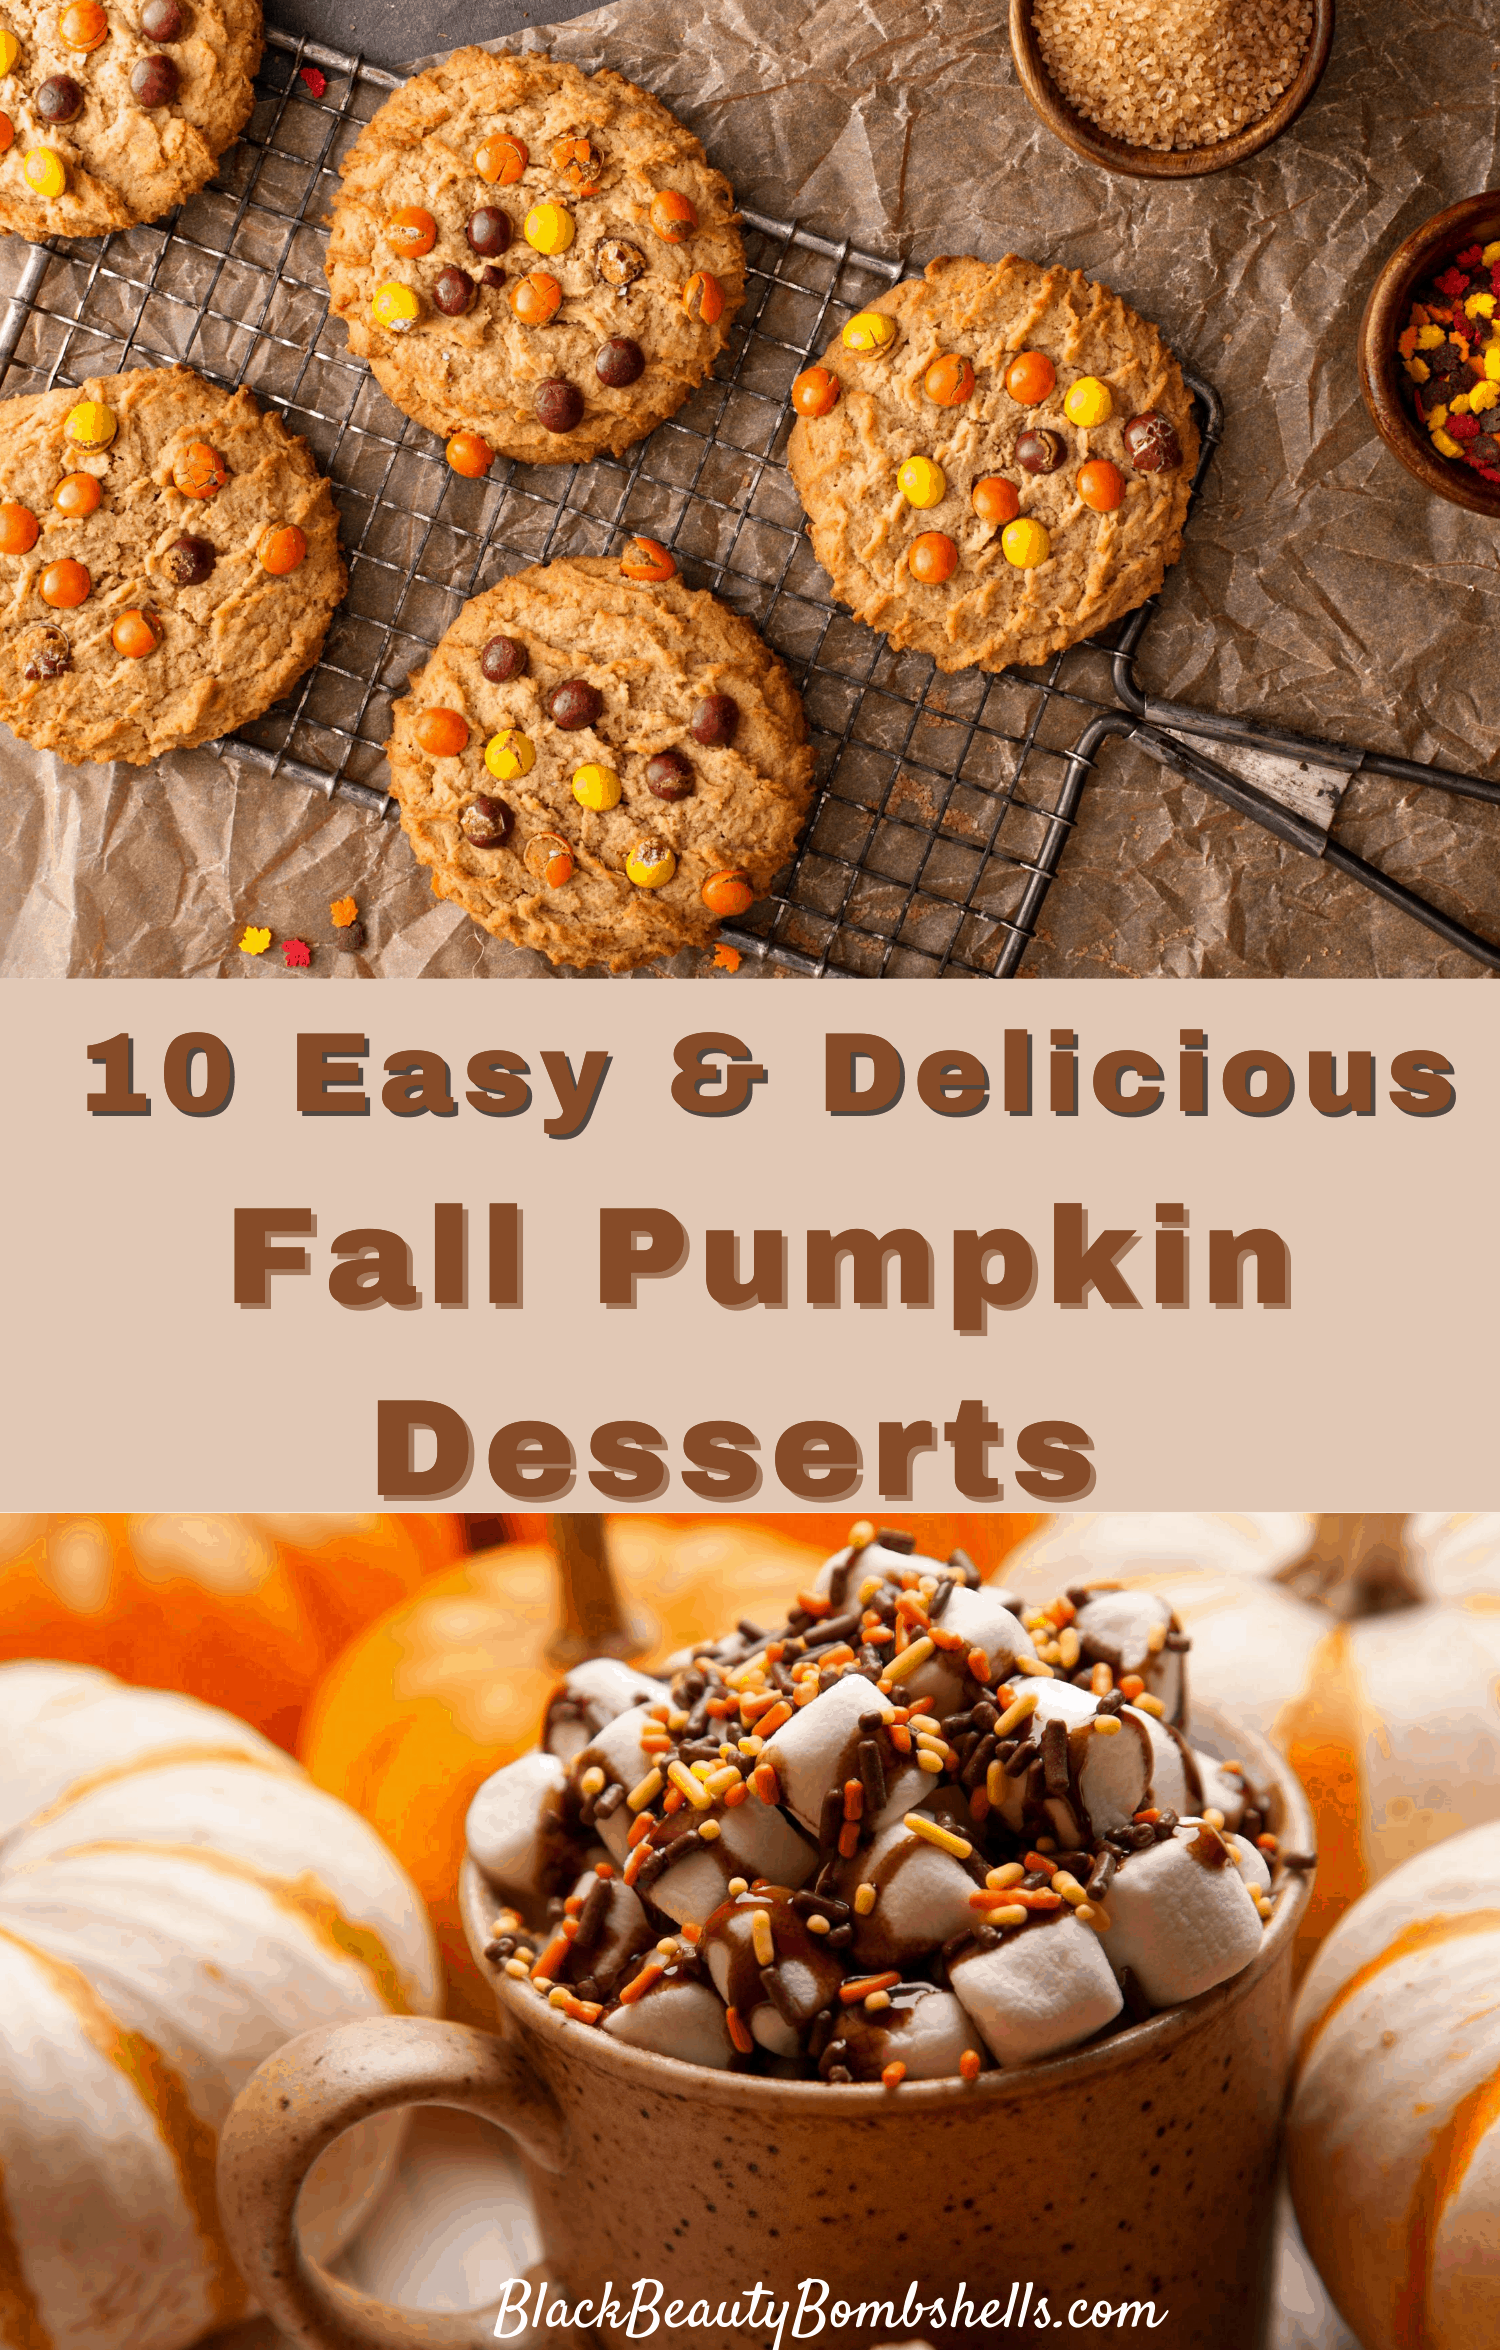 10 Easy & Delicious Fall Pumpkin Desserts You'll Love